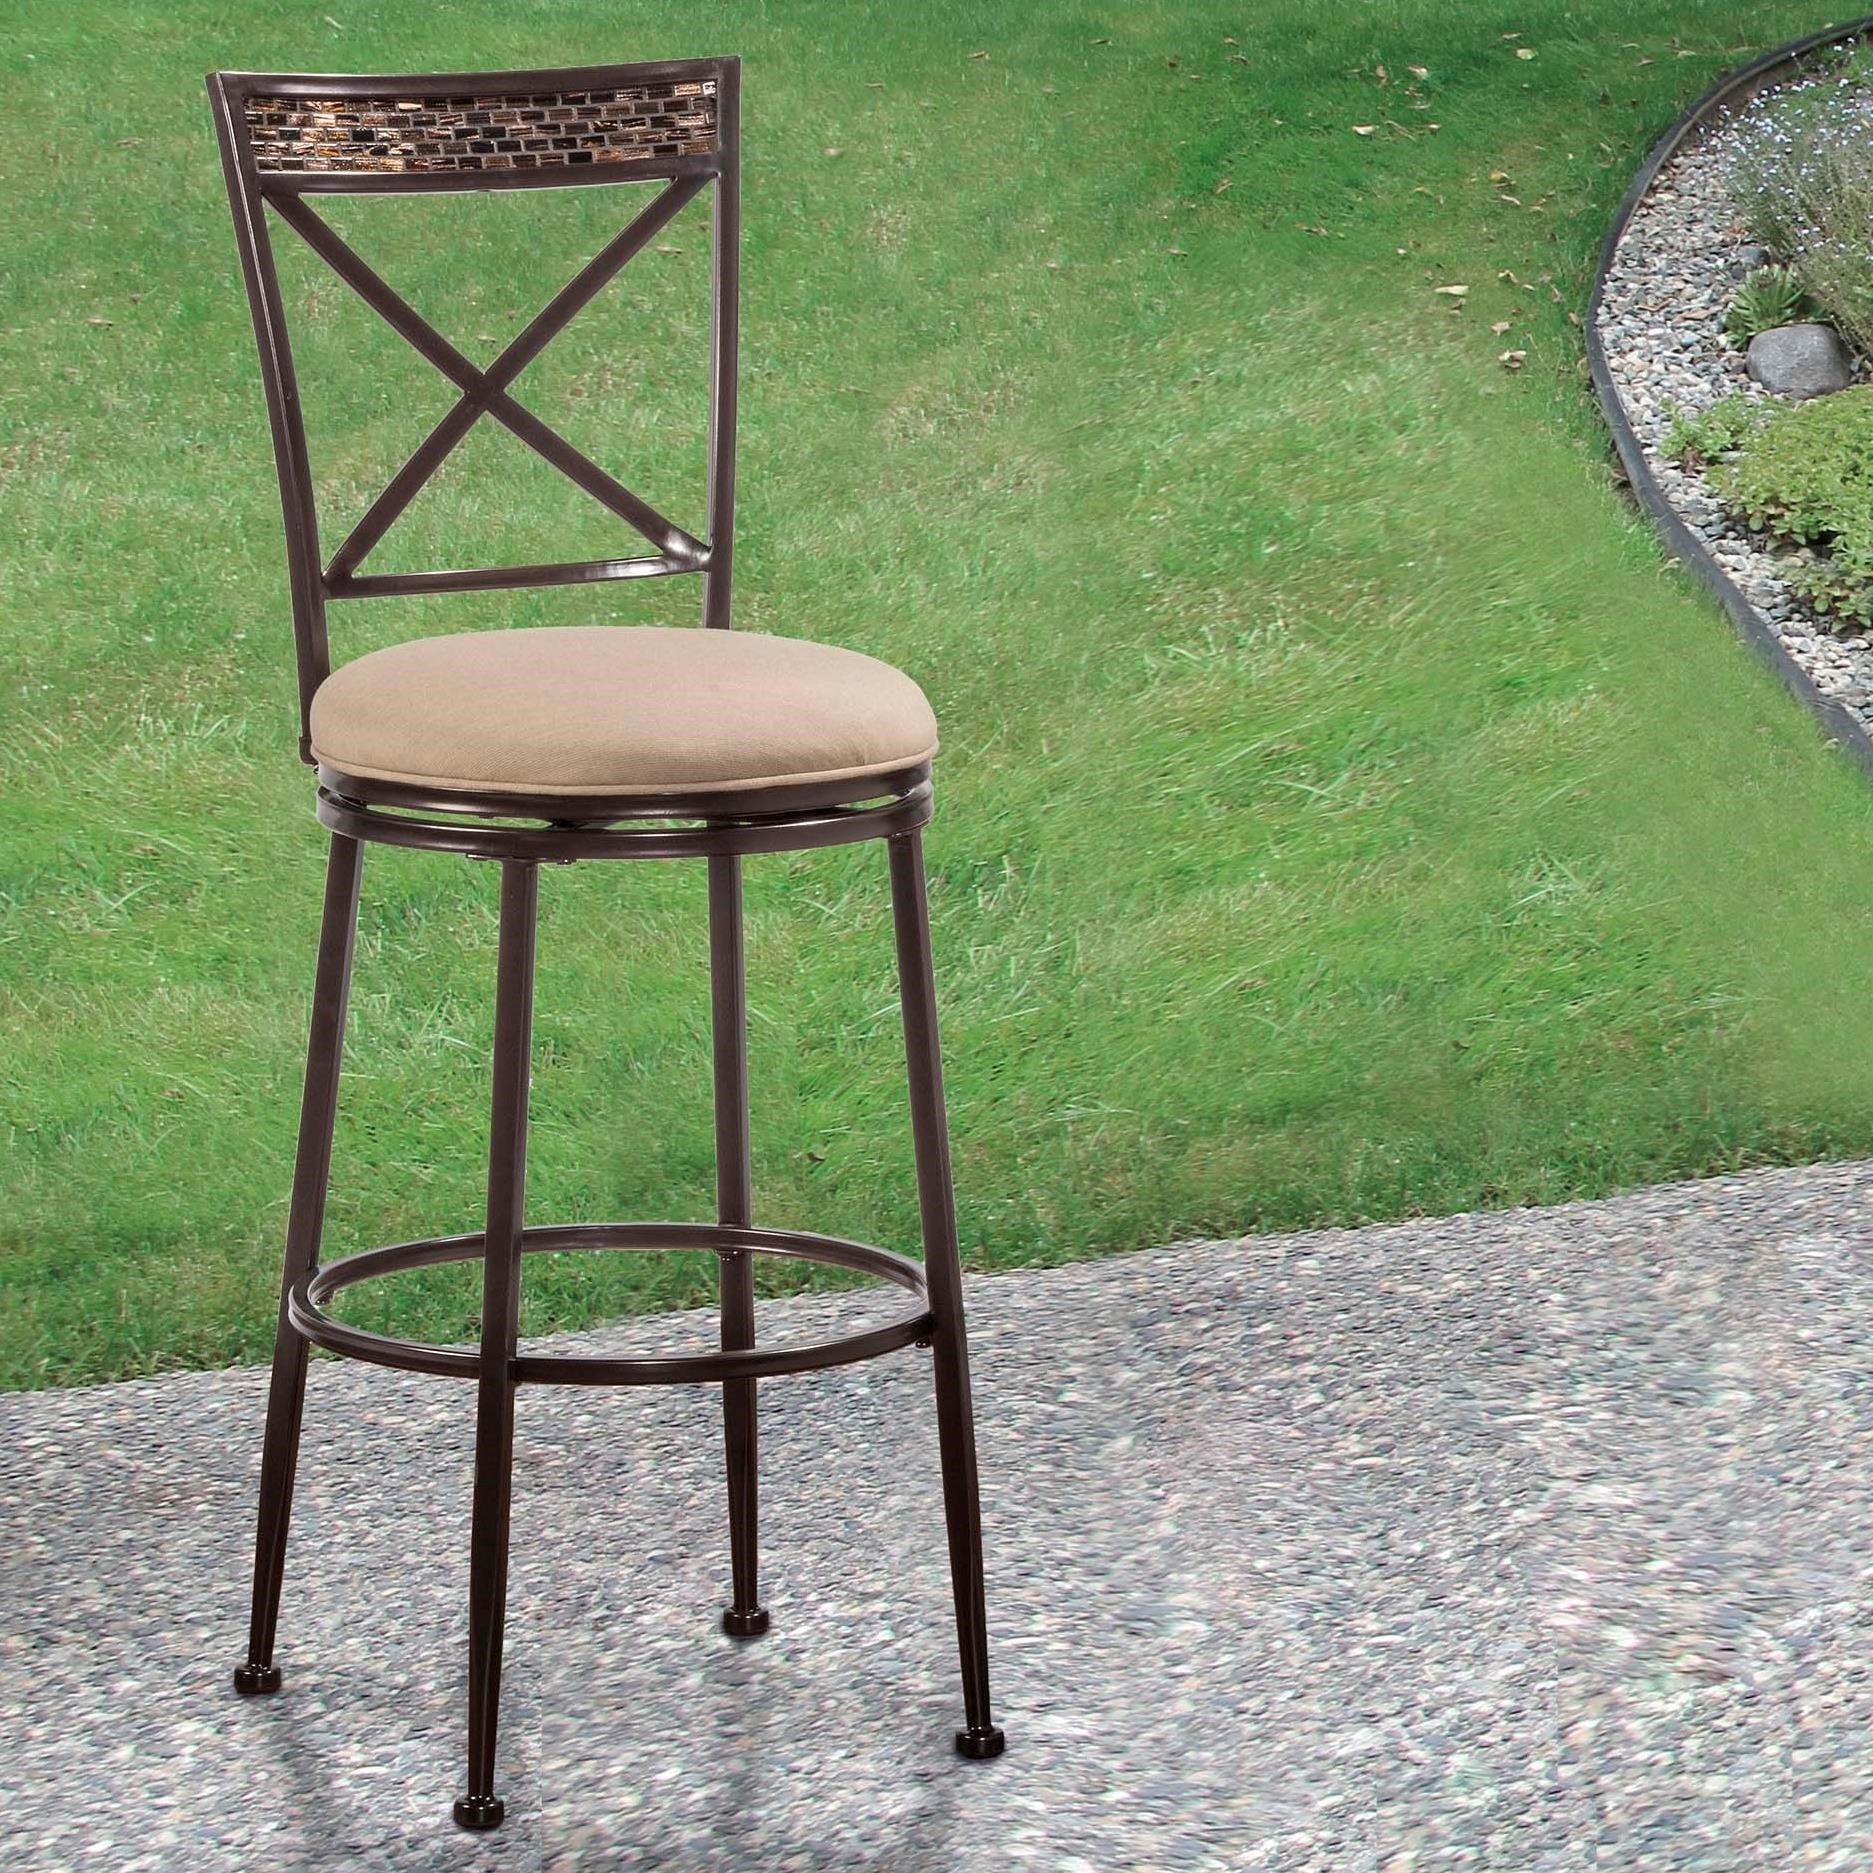 Indoor/Outdoor Stools Swivel Counter Stool by Hillsdale at Mueller Furniture